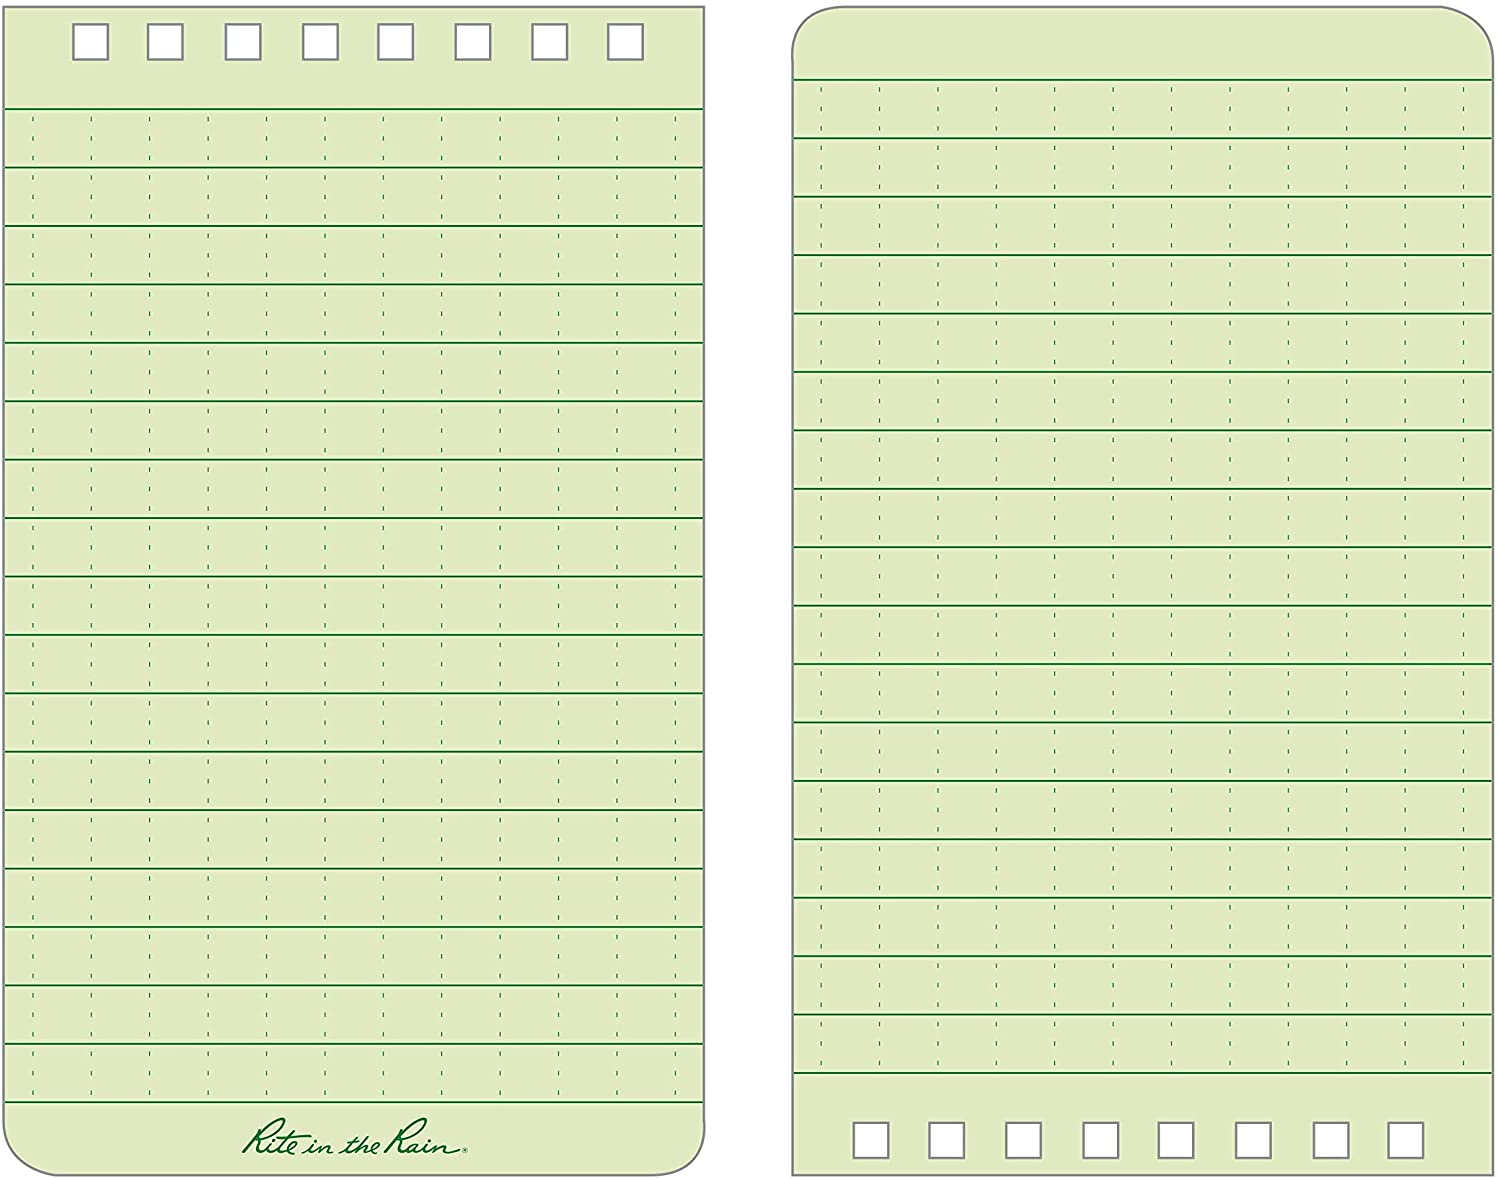 No. 935 Universal Pattern Rite in the Rain Weatherproof Top-Spiral Notebook Green Cover 3 x 5